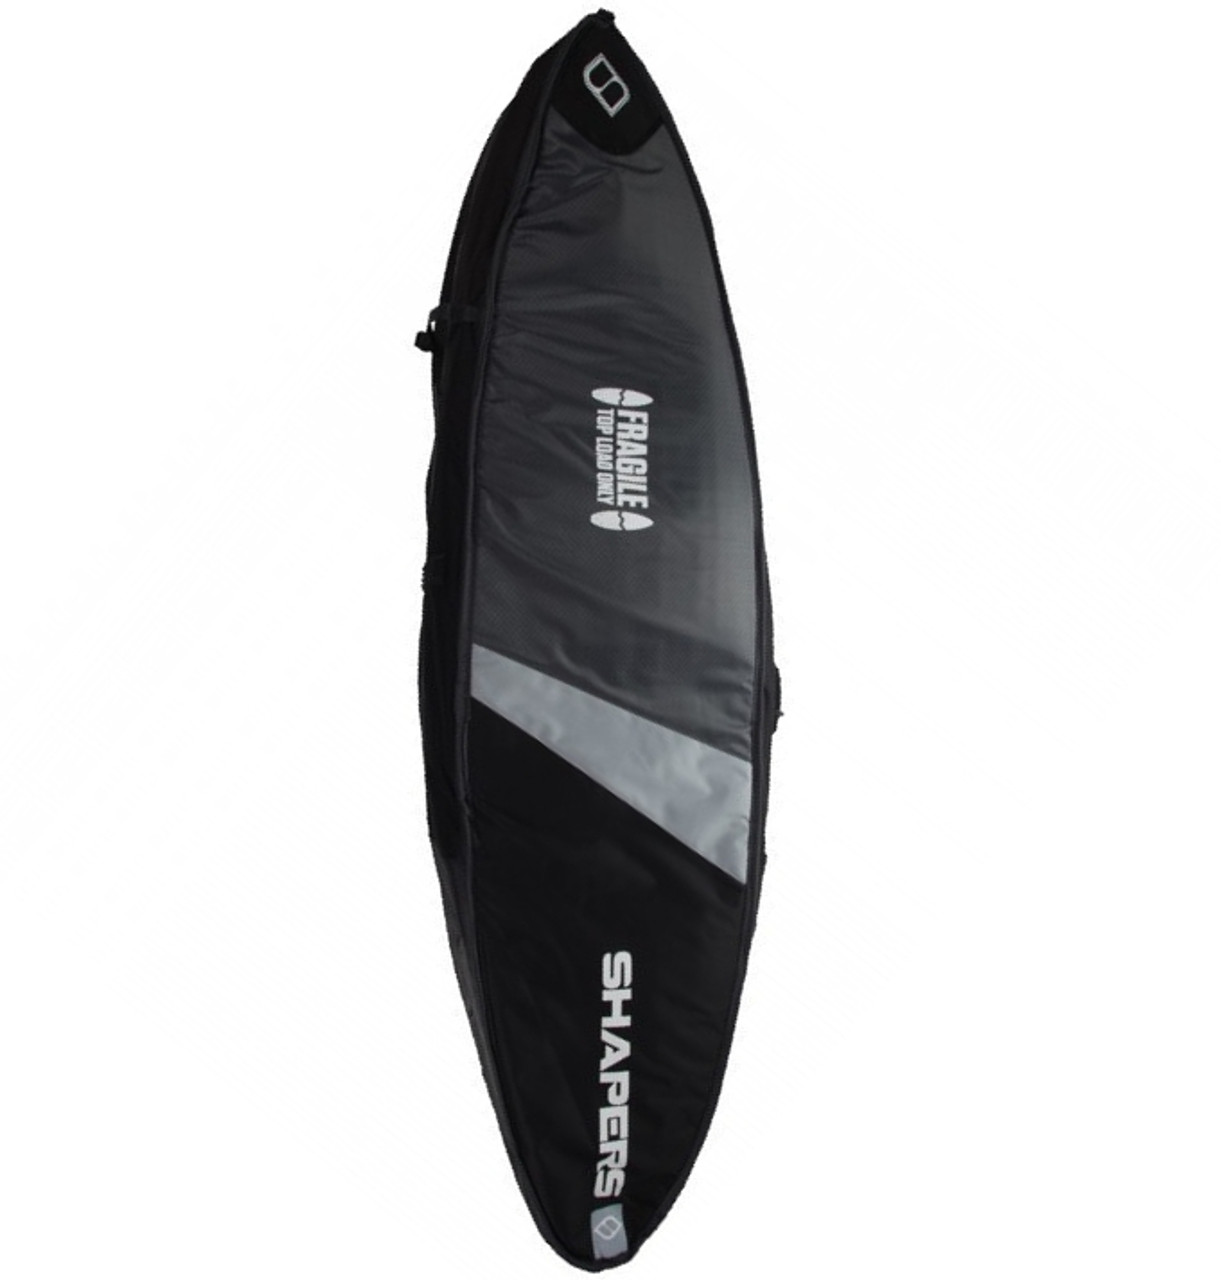 shapers team surfboard bag